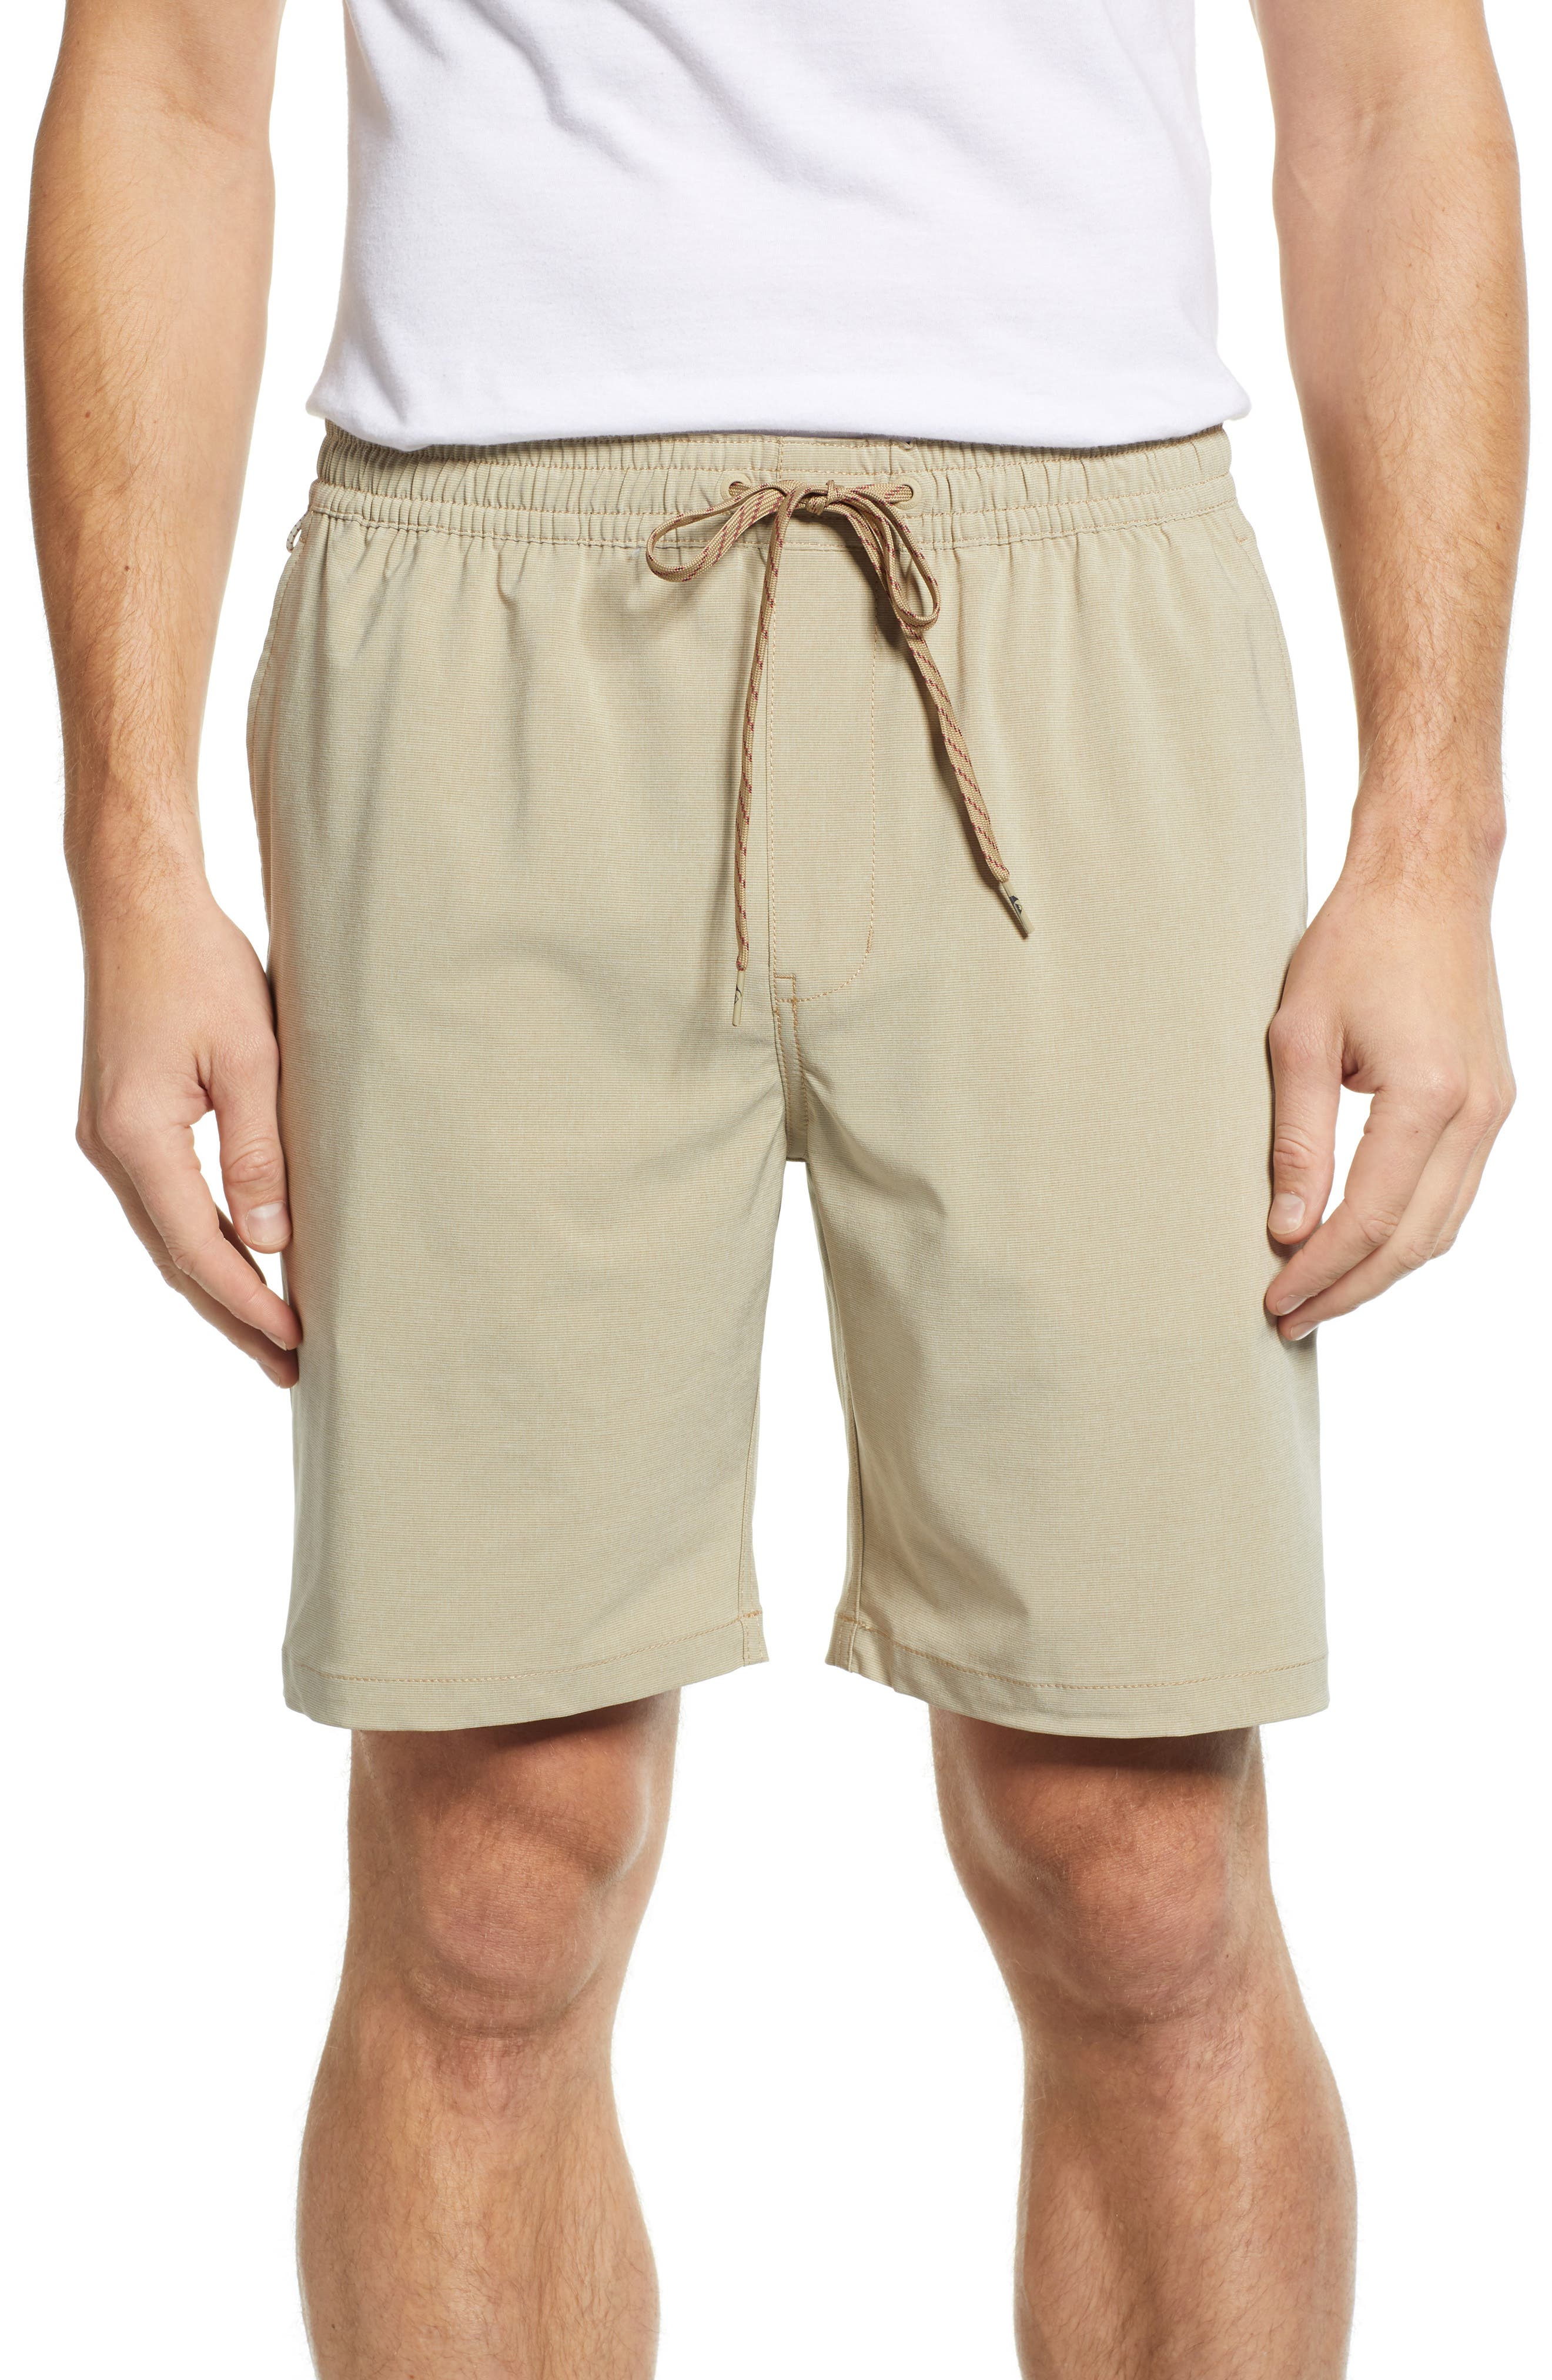 QUIKSILVER WATERMAN COLLECTION Suva Amphibian Hybrid Shorts, Main, color, TWILL